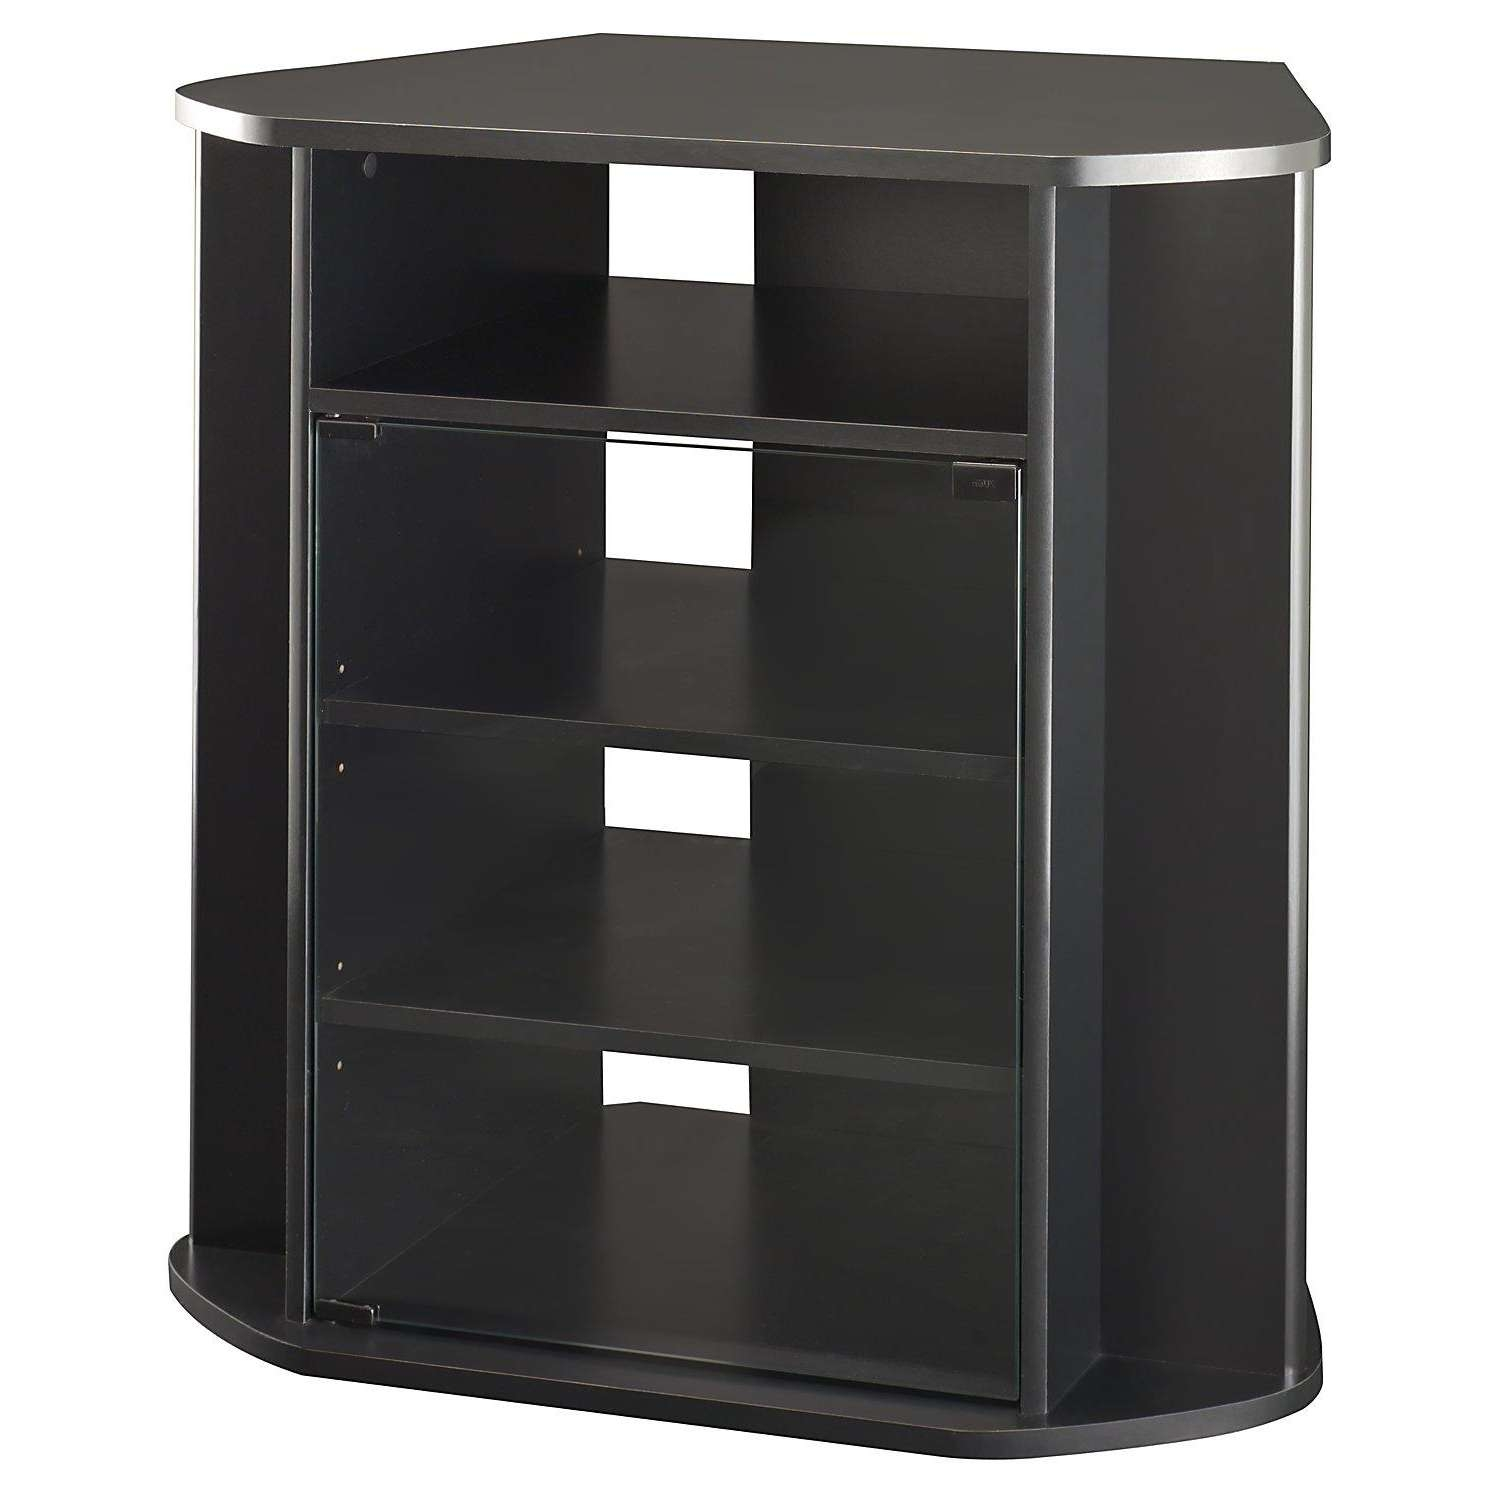 Prodigious Tv Cabinet Ikea A Media Cabinet Media Cabinets With Inside Black Tv Cabinets With Doors (View 17 of 20)